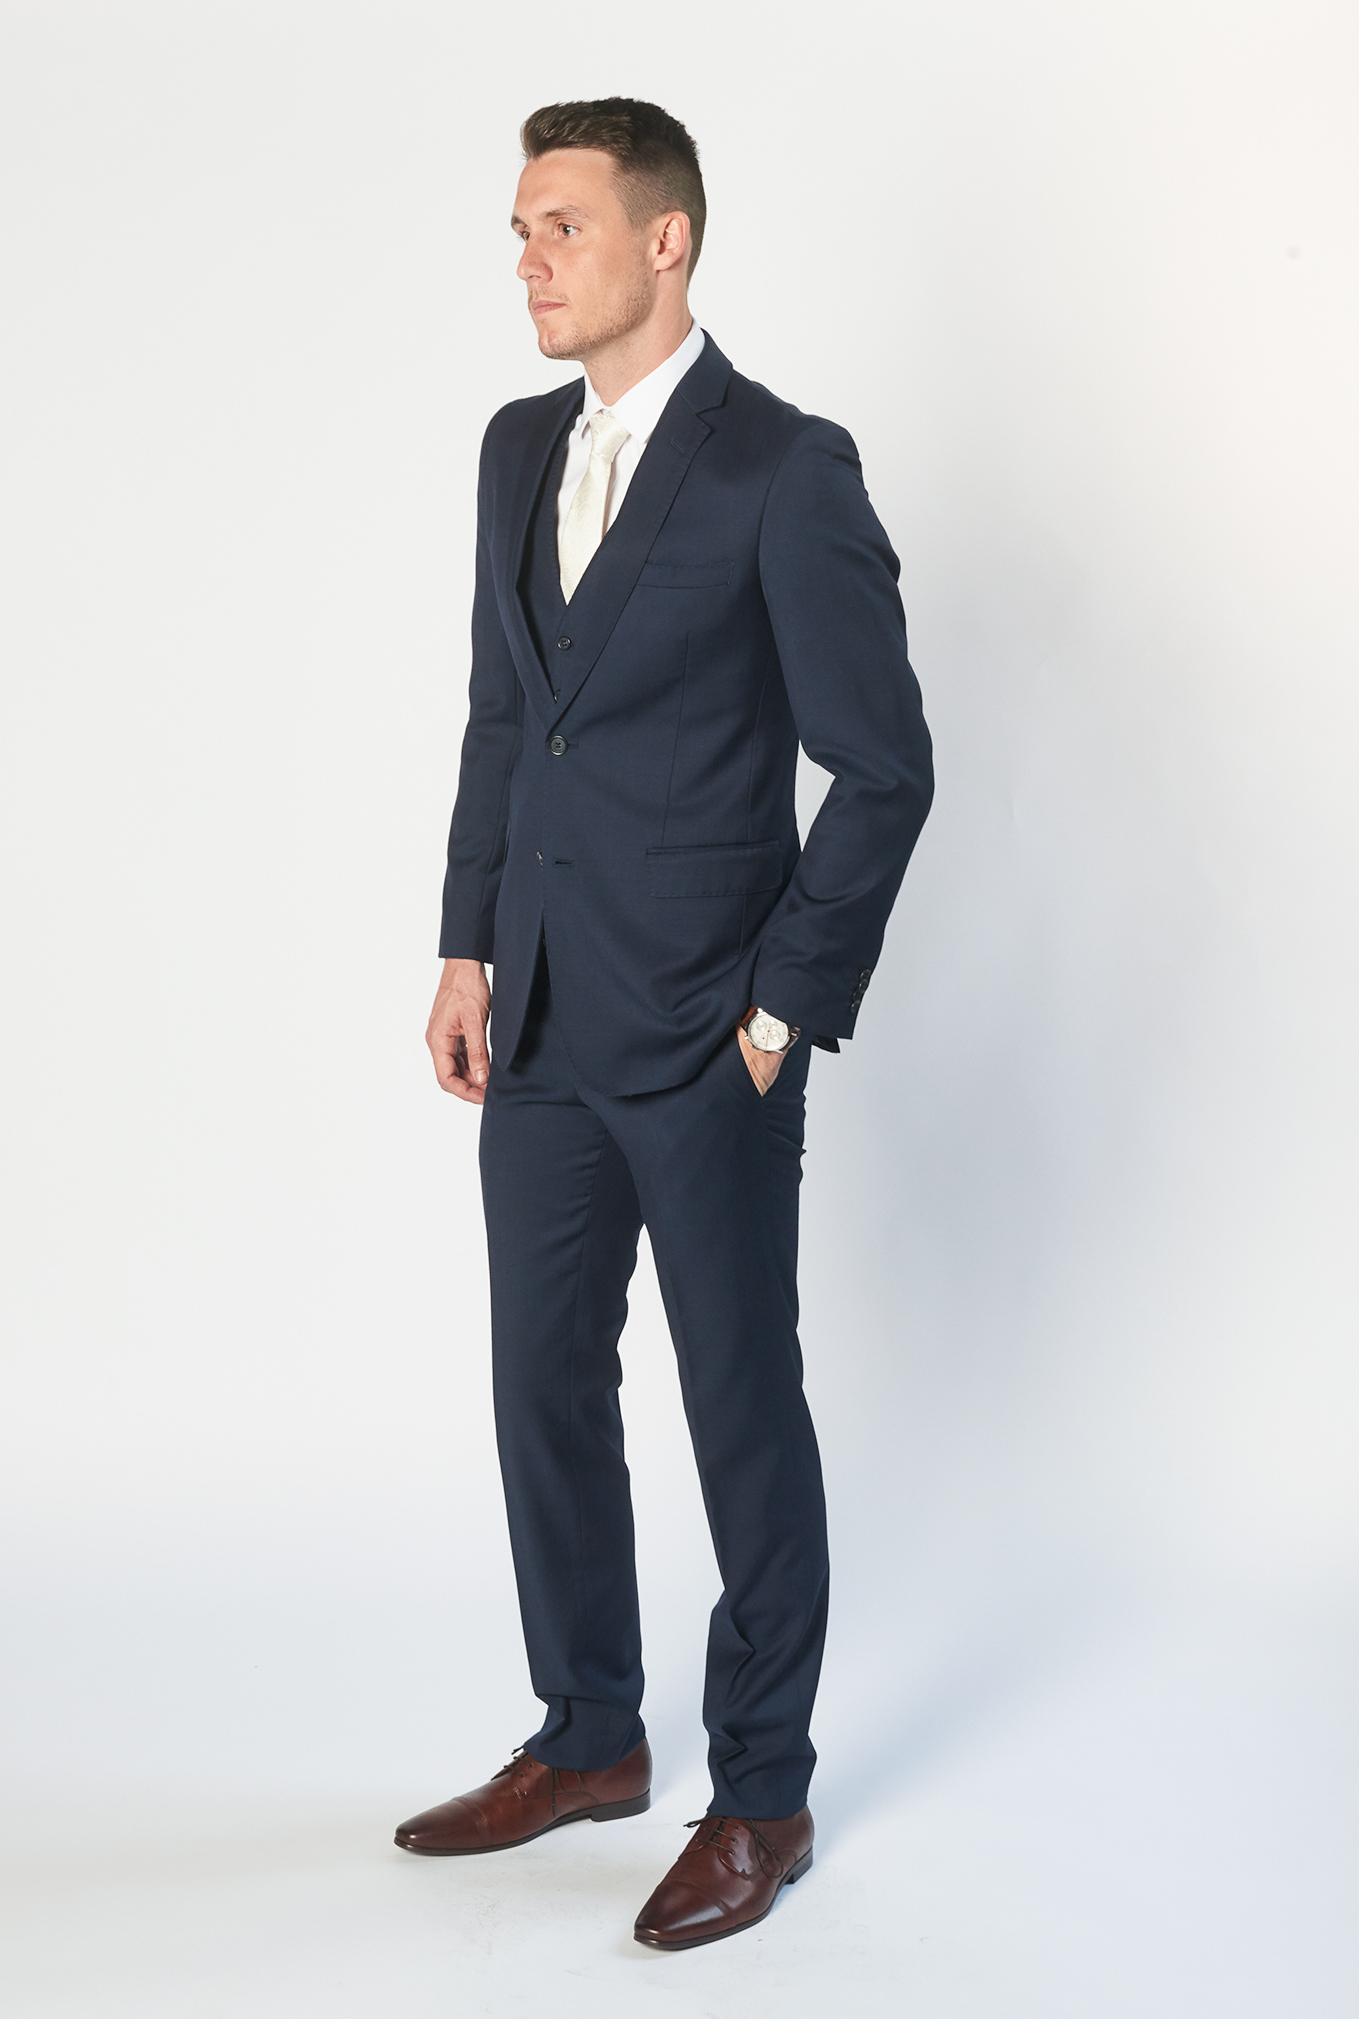 The Icon navy blue suit side view